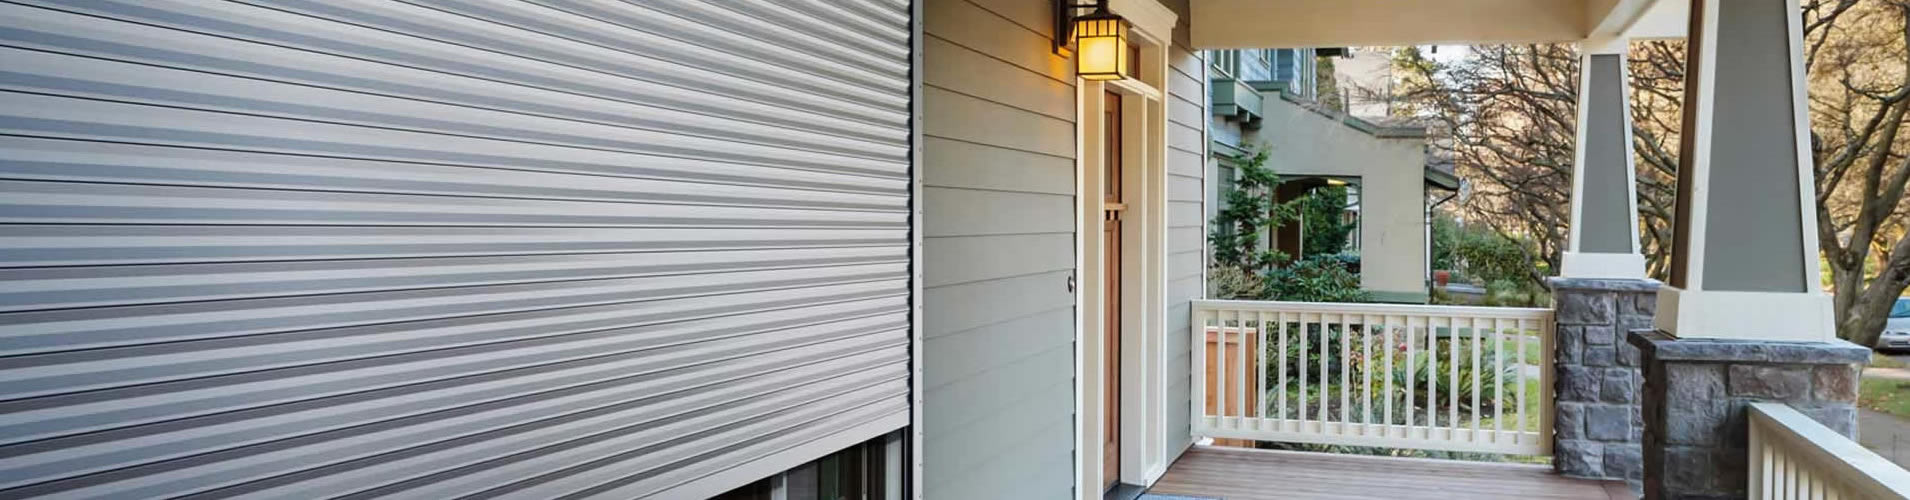 Rolling Storm & Security Shutters - Austin, TX